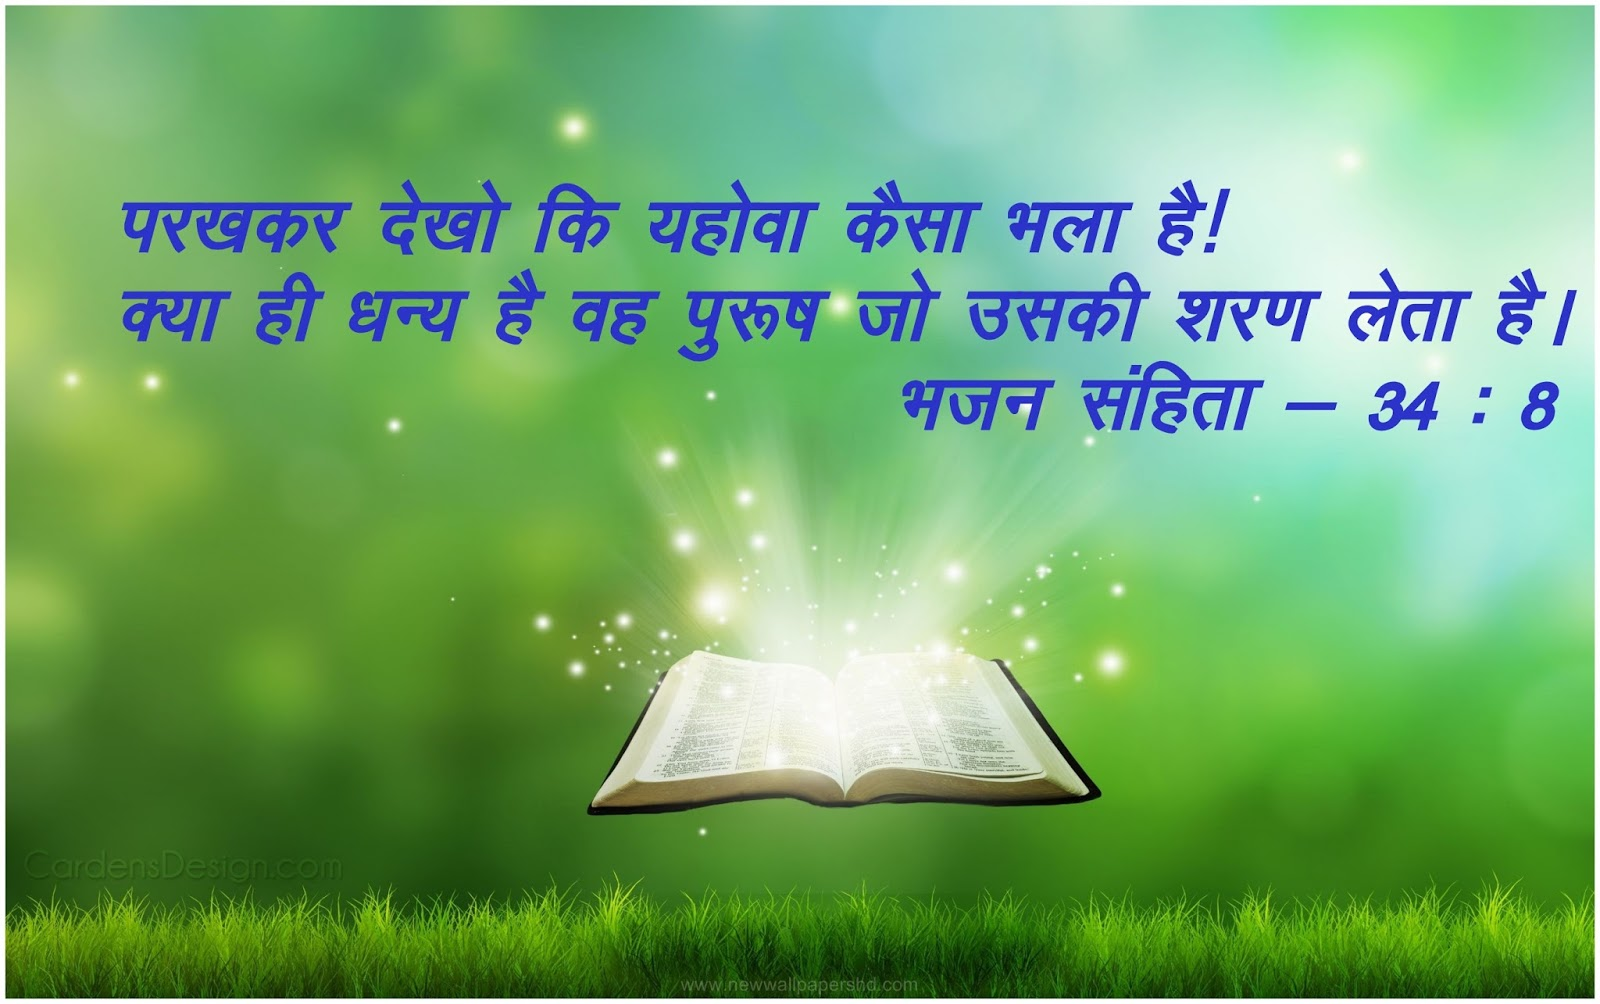 Hindi Bible Verses - #GolfClub